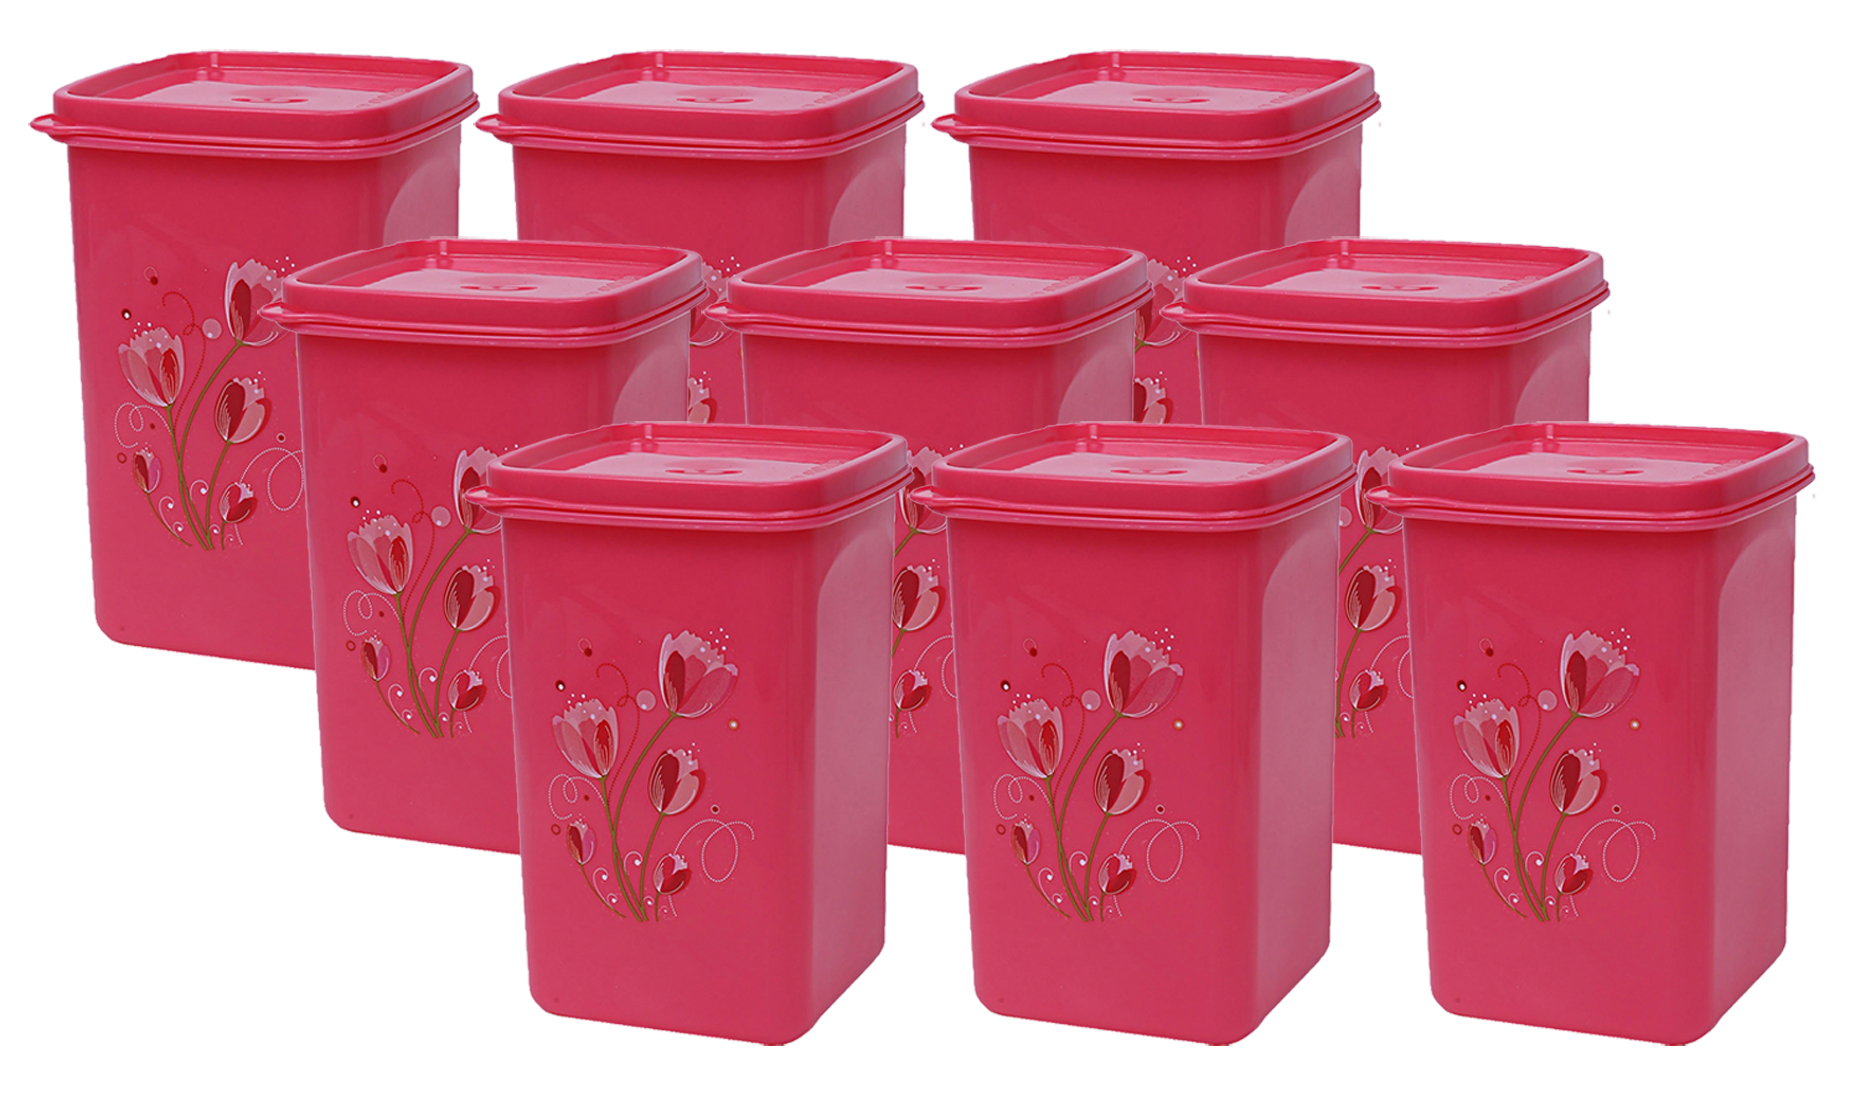 Kuber Industries Plastic 9 Pieces Multipurpose Storage Container Set 1000ml (Pink) - CTKTC23386